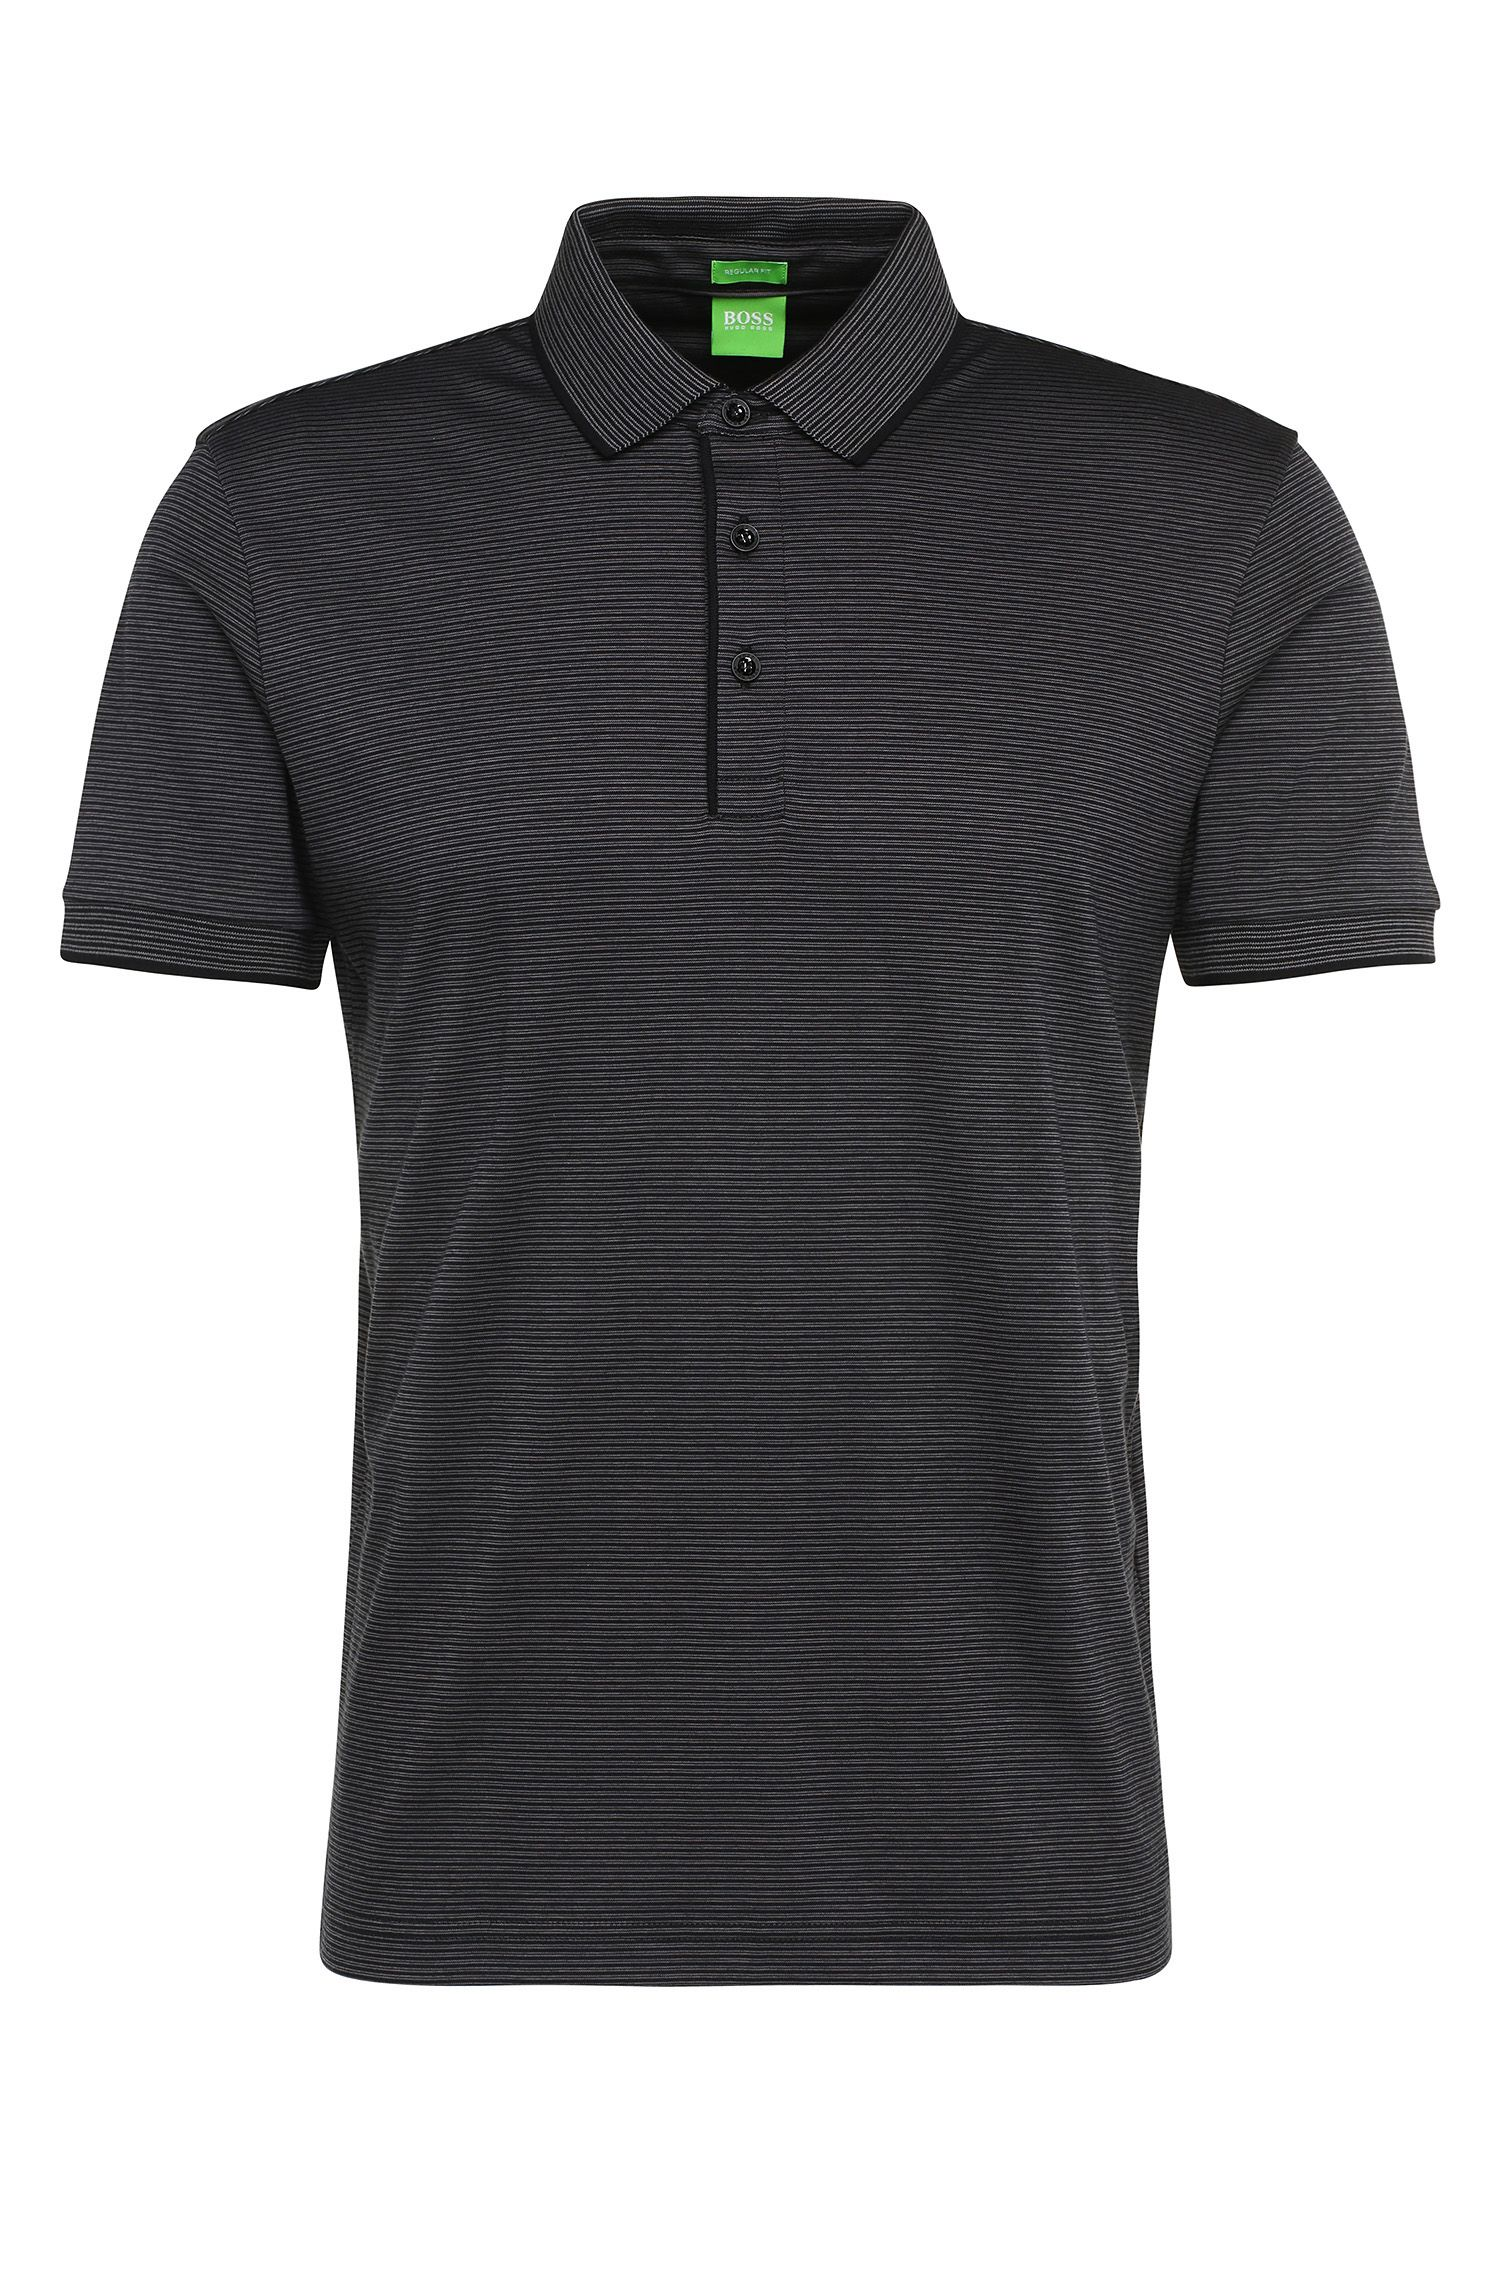 'C Janis' | Regular Fit, Cotton Striped Polo Shirt